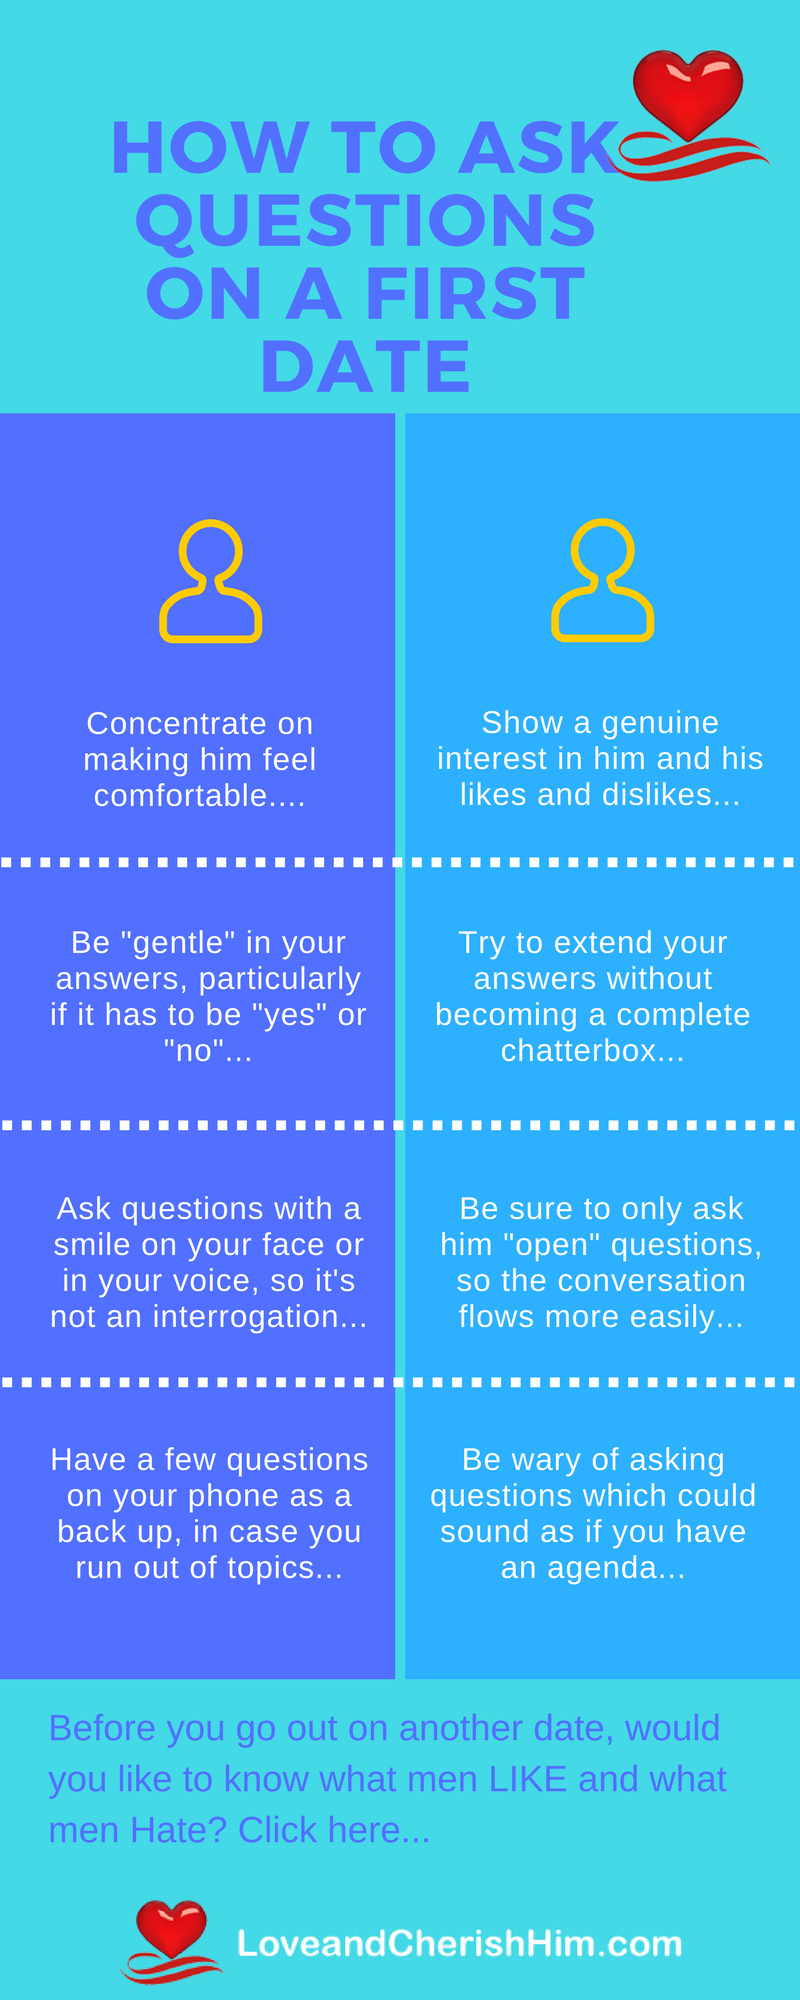 What questions to ask on dating sites